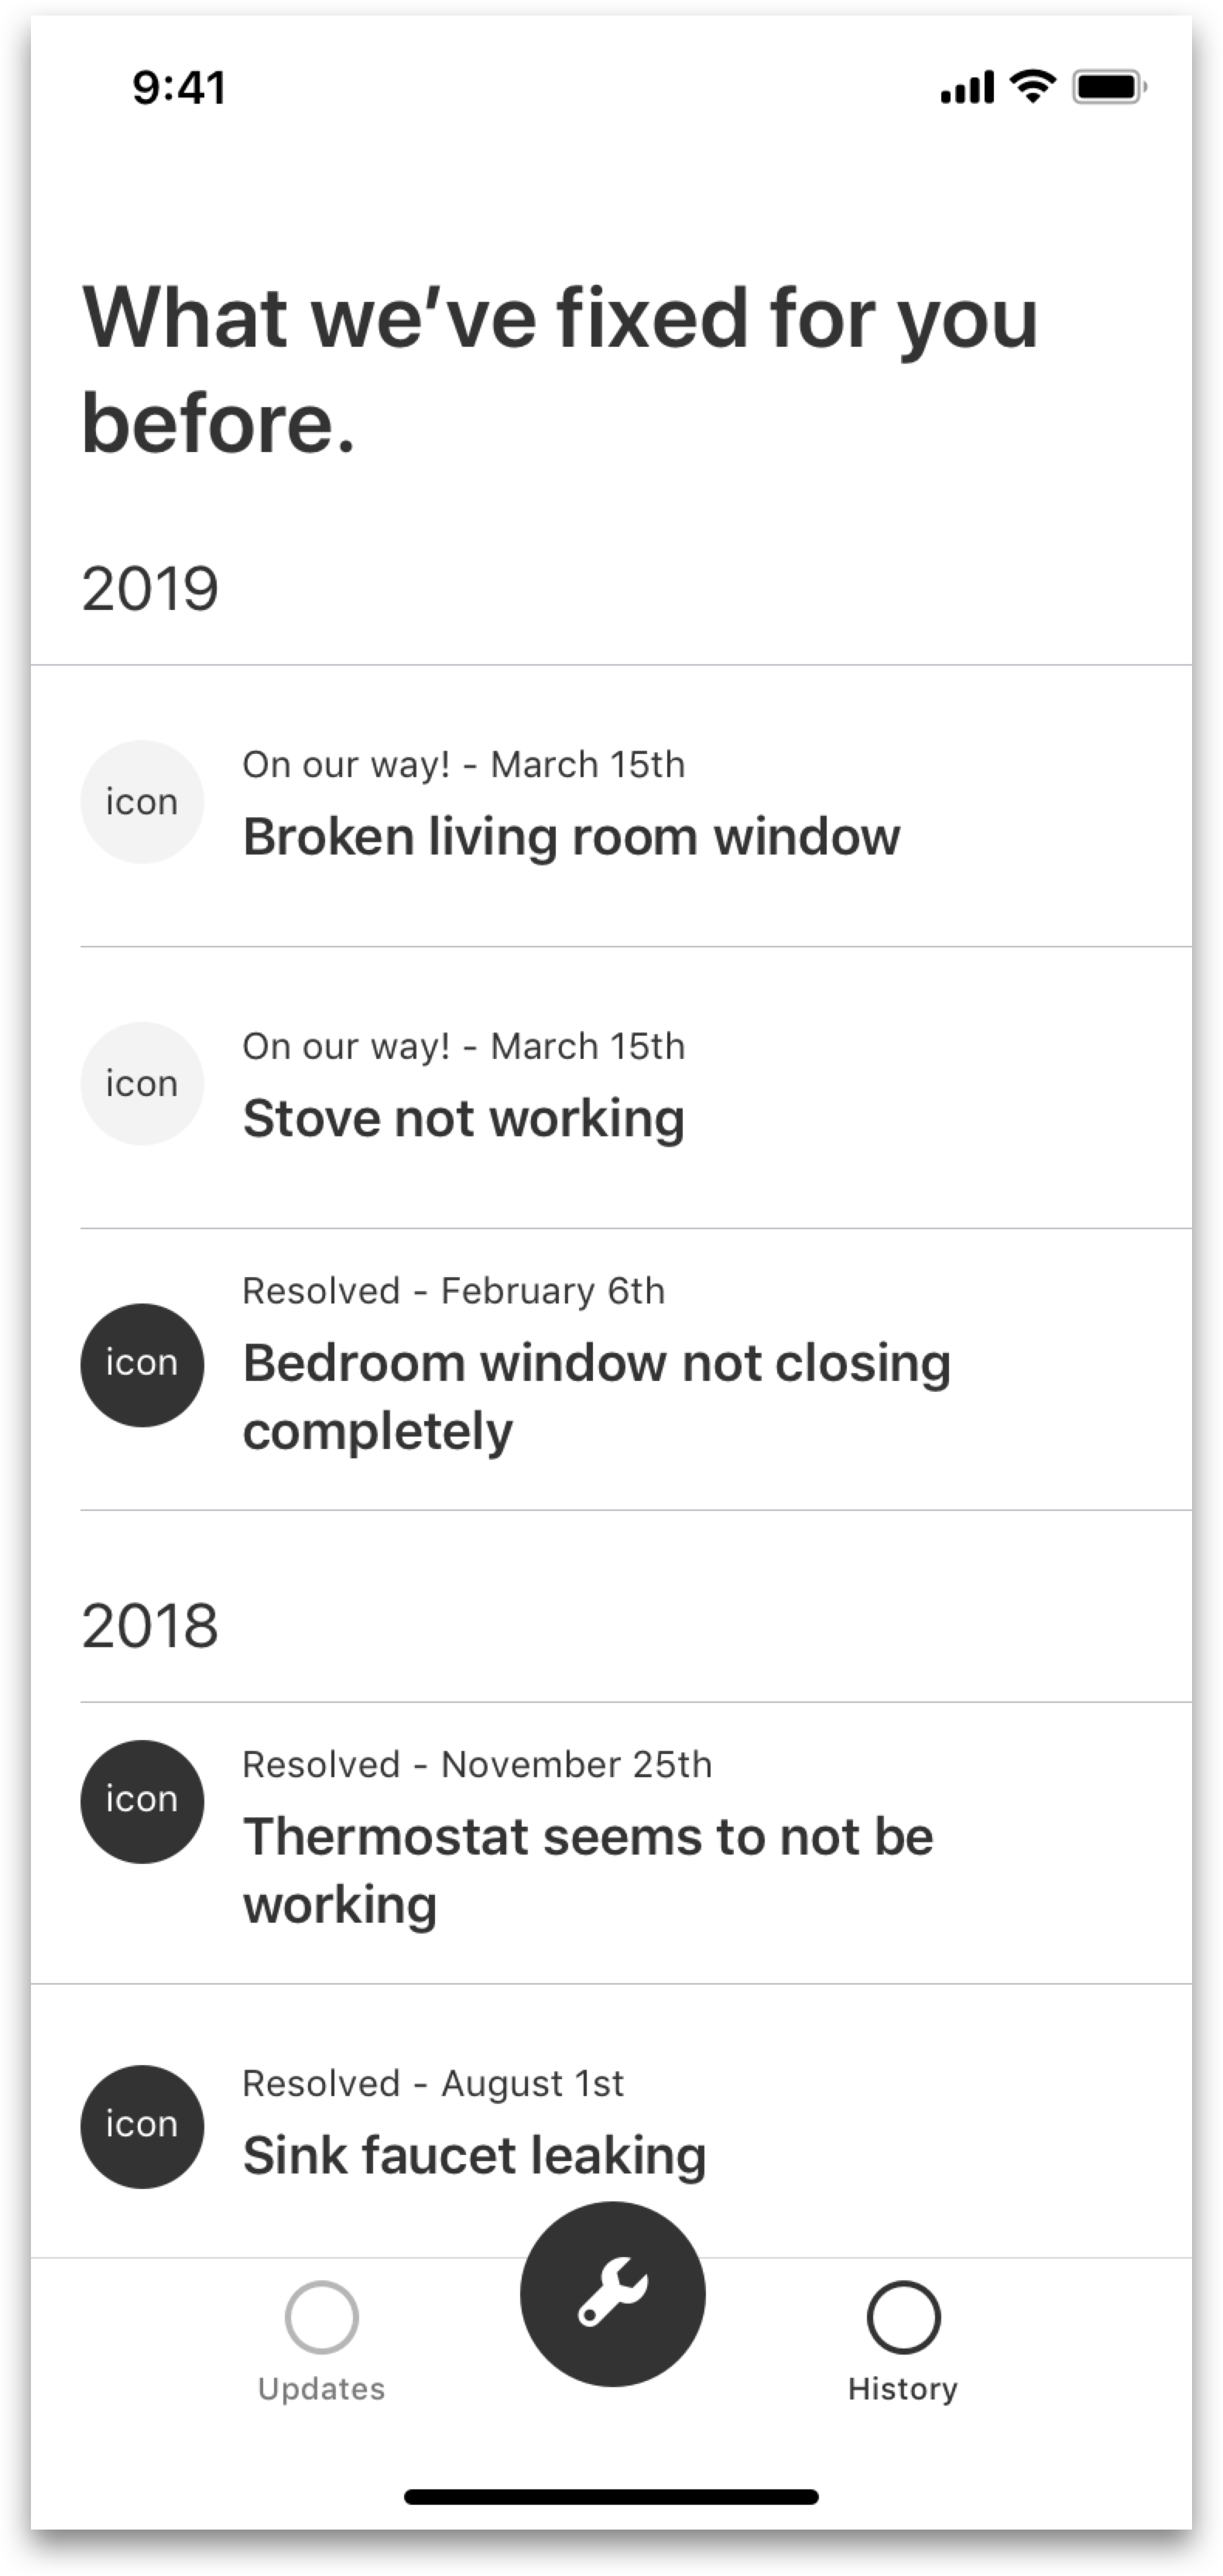 This is a history of the user's requests in list view, which can be viewed in detail upon tapping on a list item. If the list gets too long, I can perhaps use some tabs separating the list by year. -